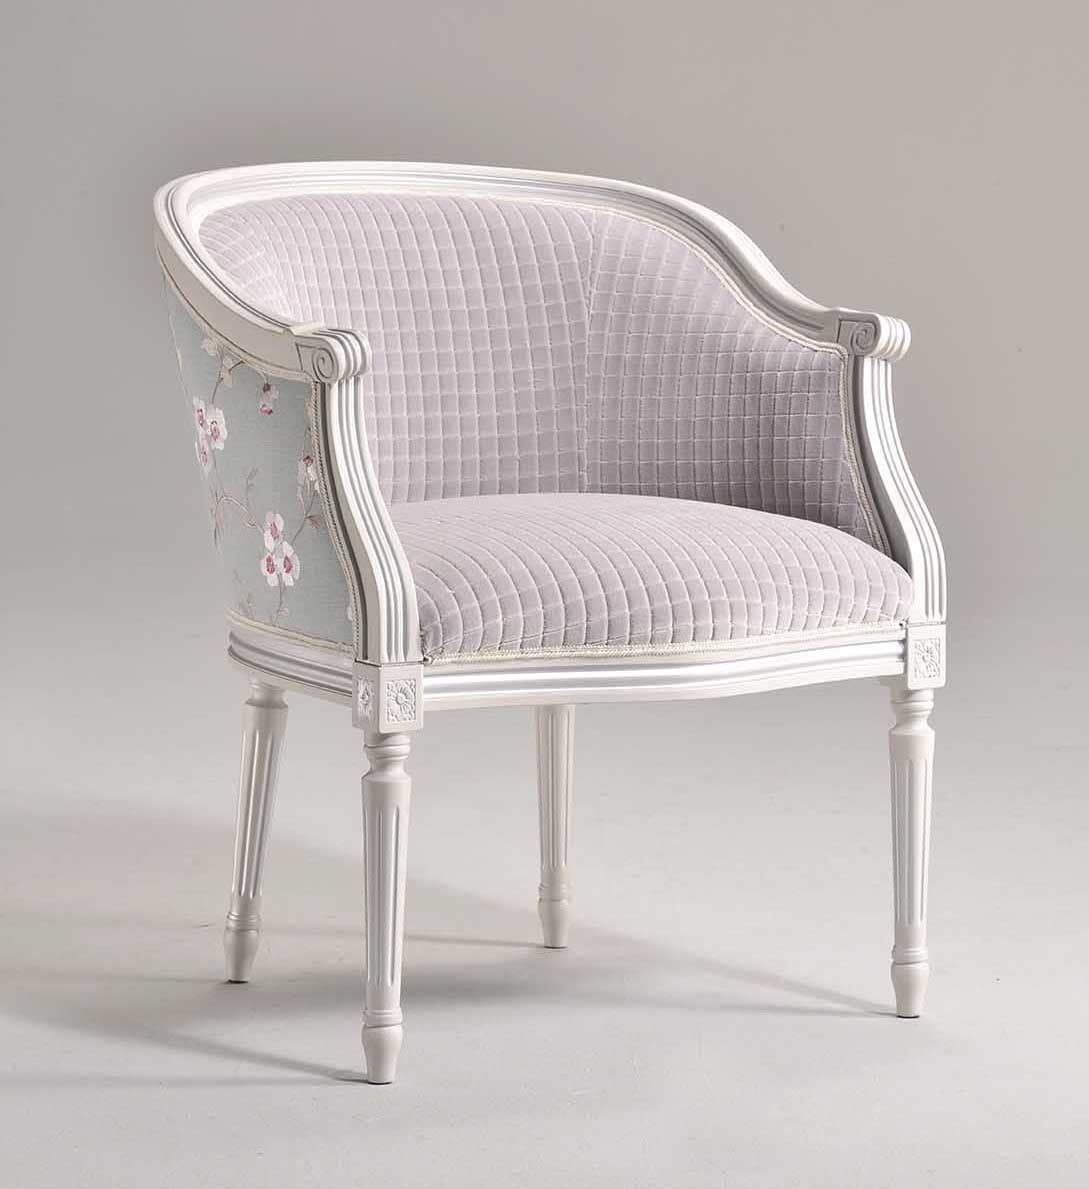 ORNELLA armchair 8039A, Upholstered beech armchair, for traditional salons